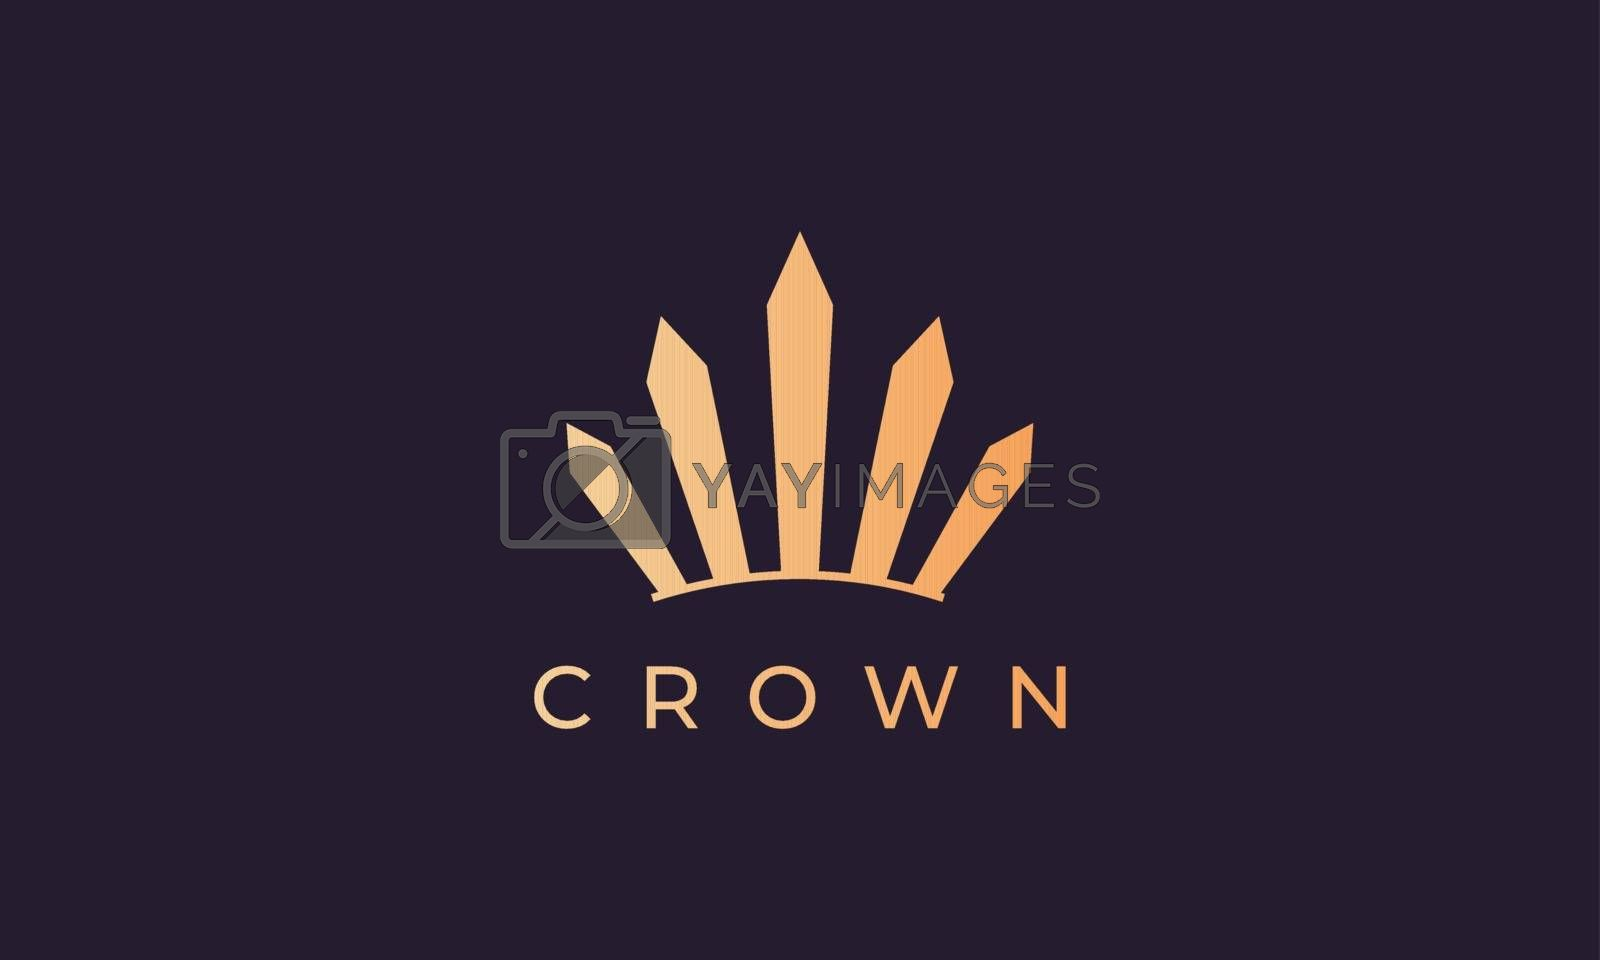 royal crown logo with simple line art style and luxury gold color